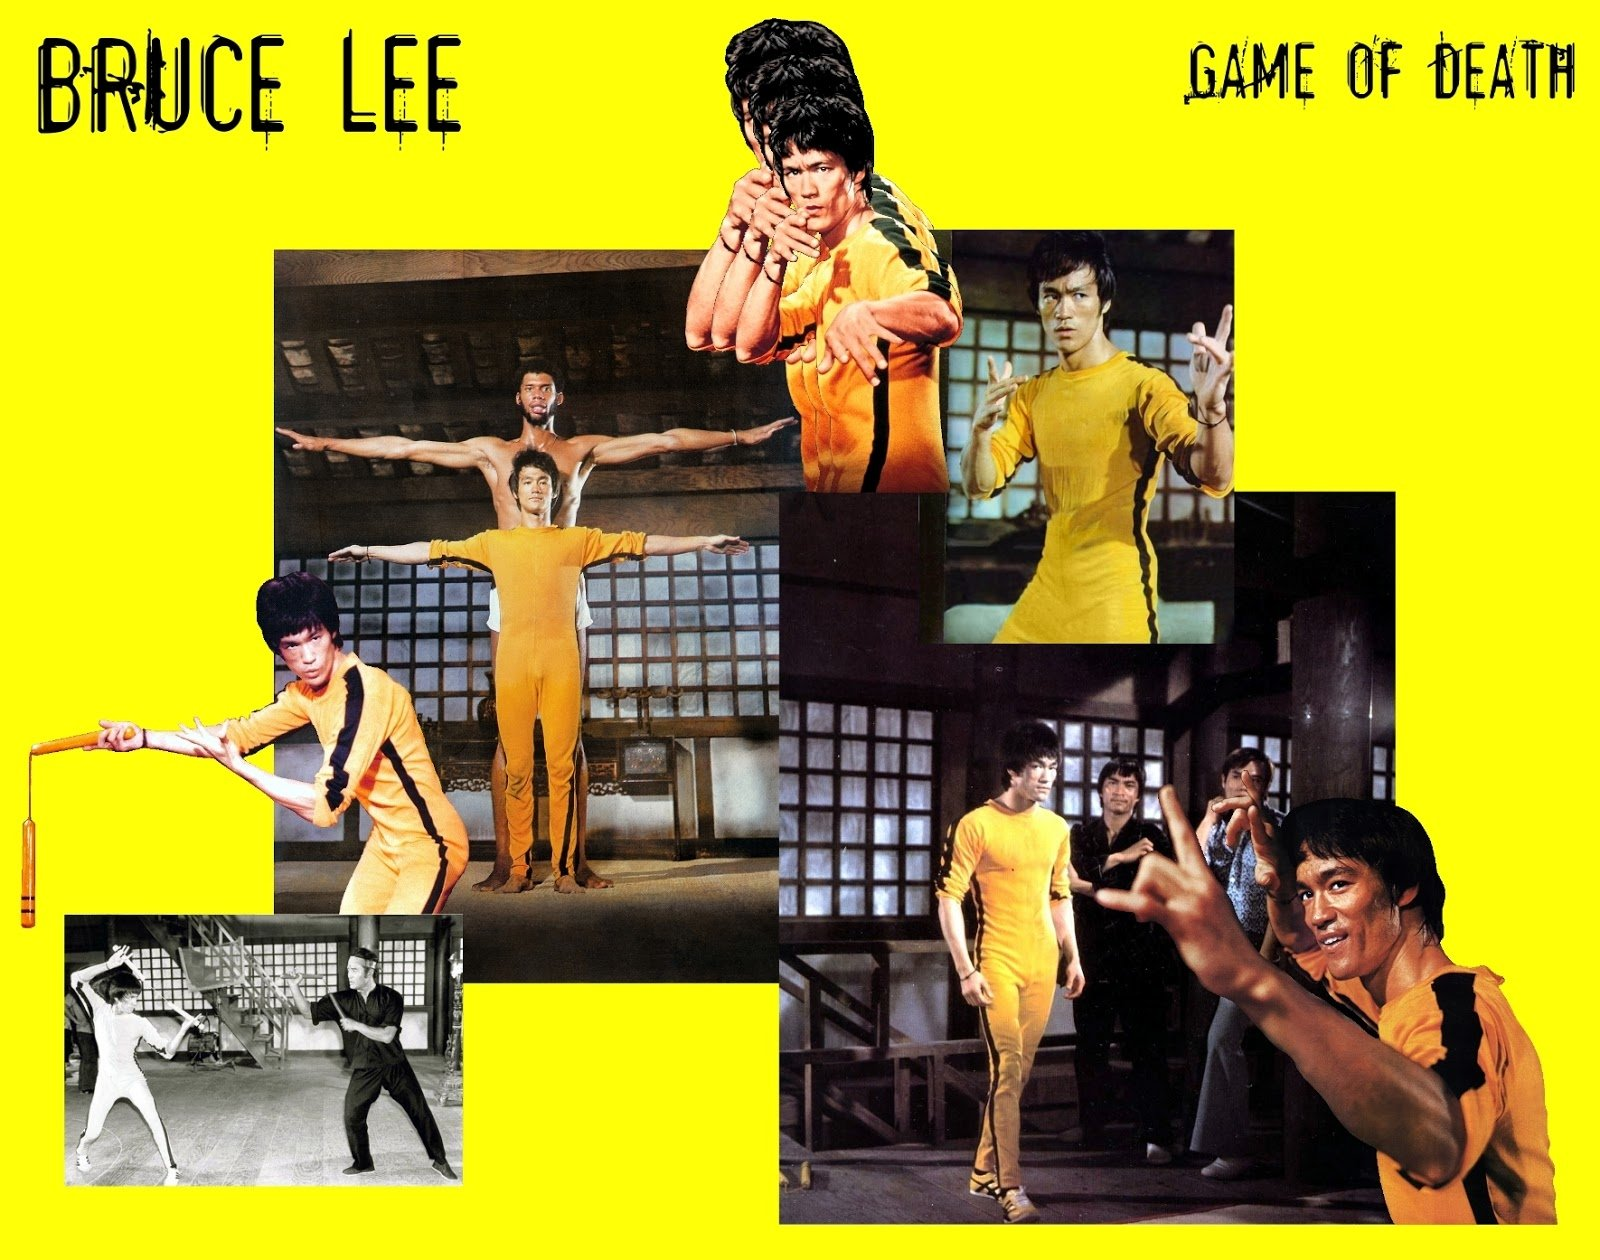 Game Of Death Wallpaper and Background Image   1600x1260   ID:770830 - Wallpaper Abyss